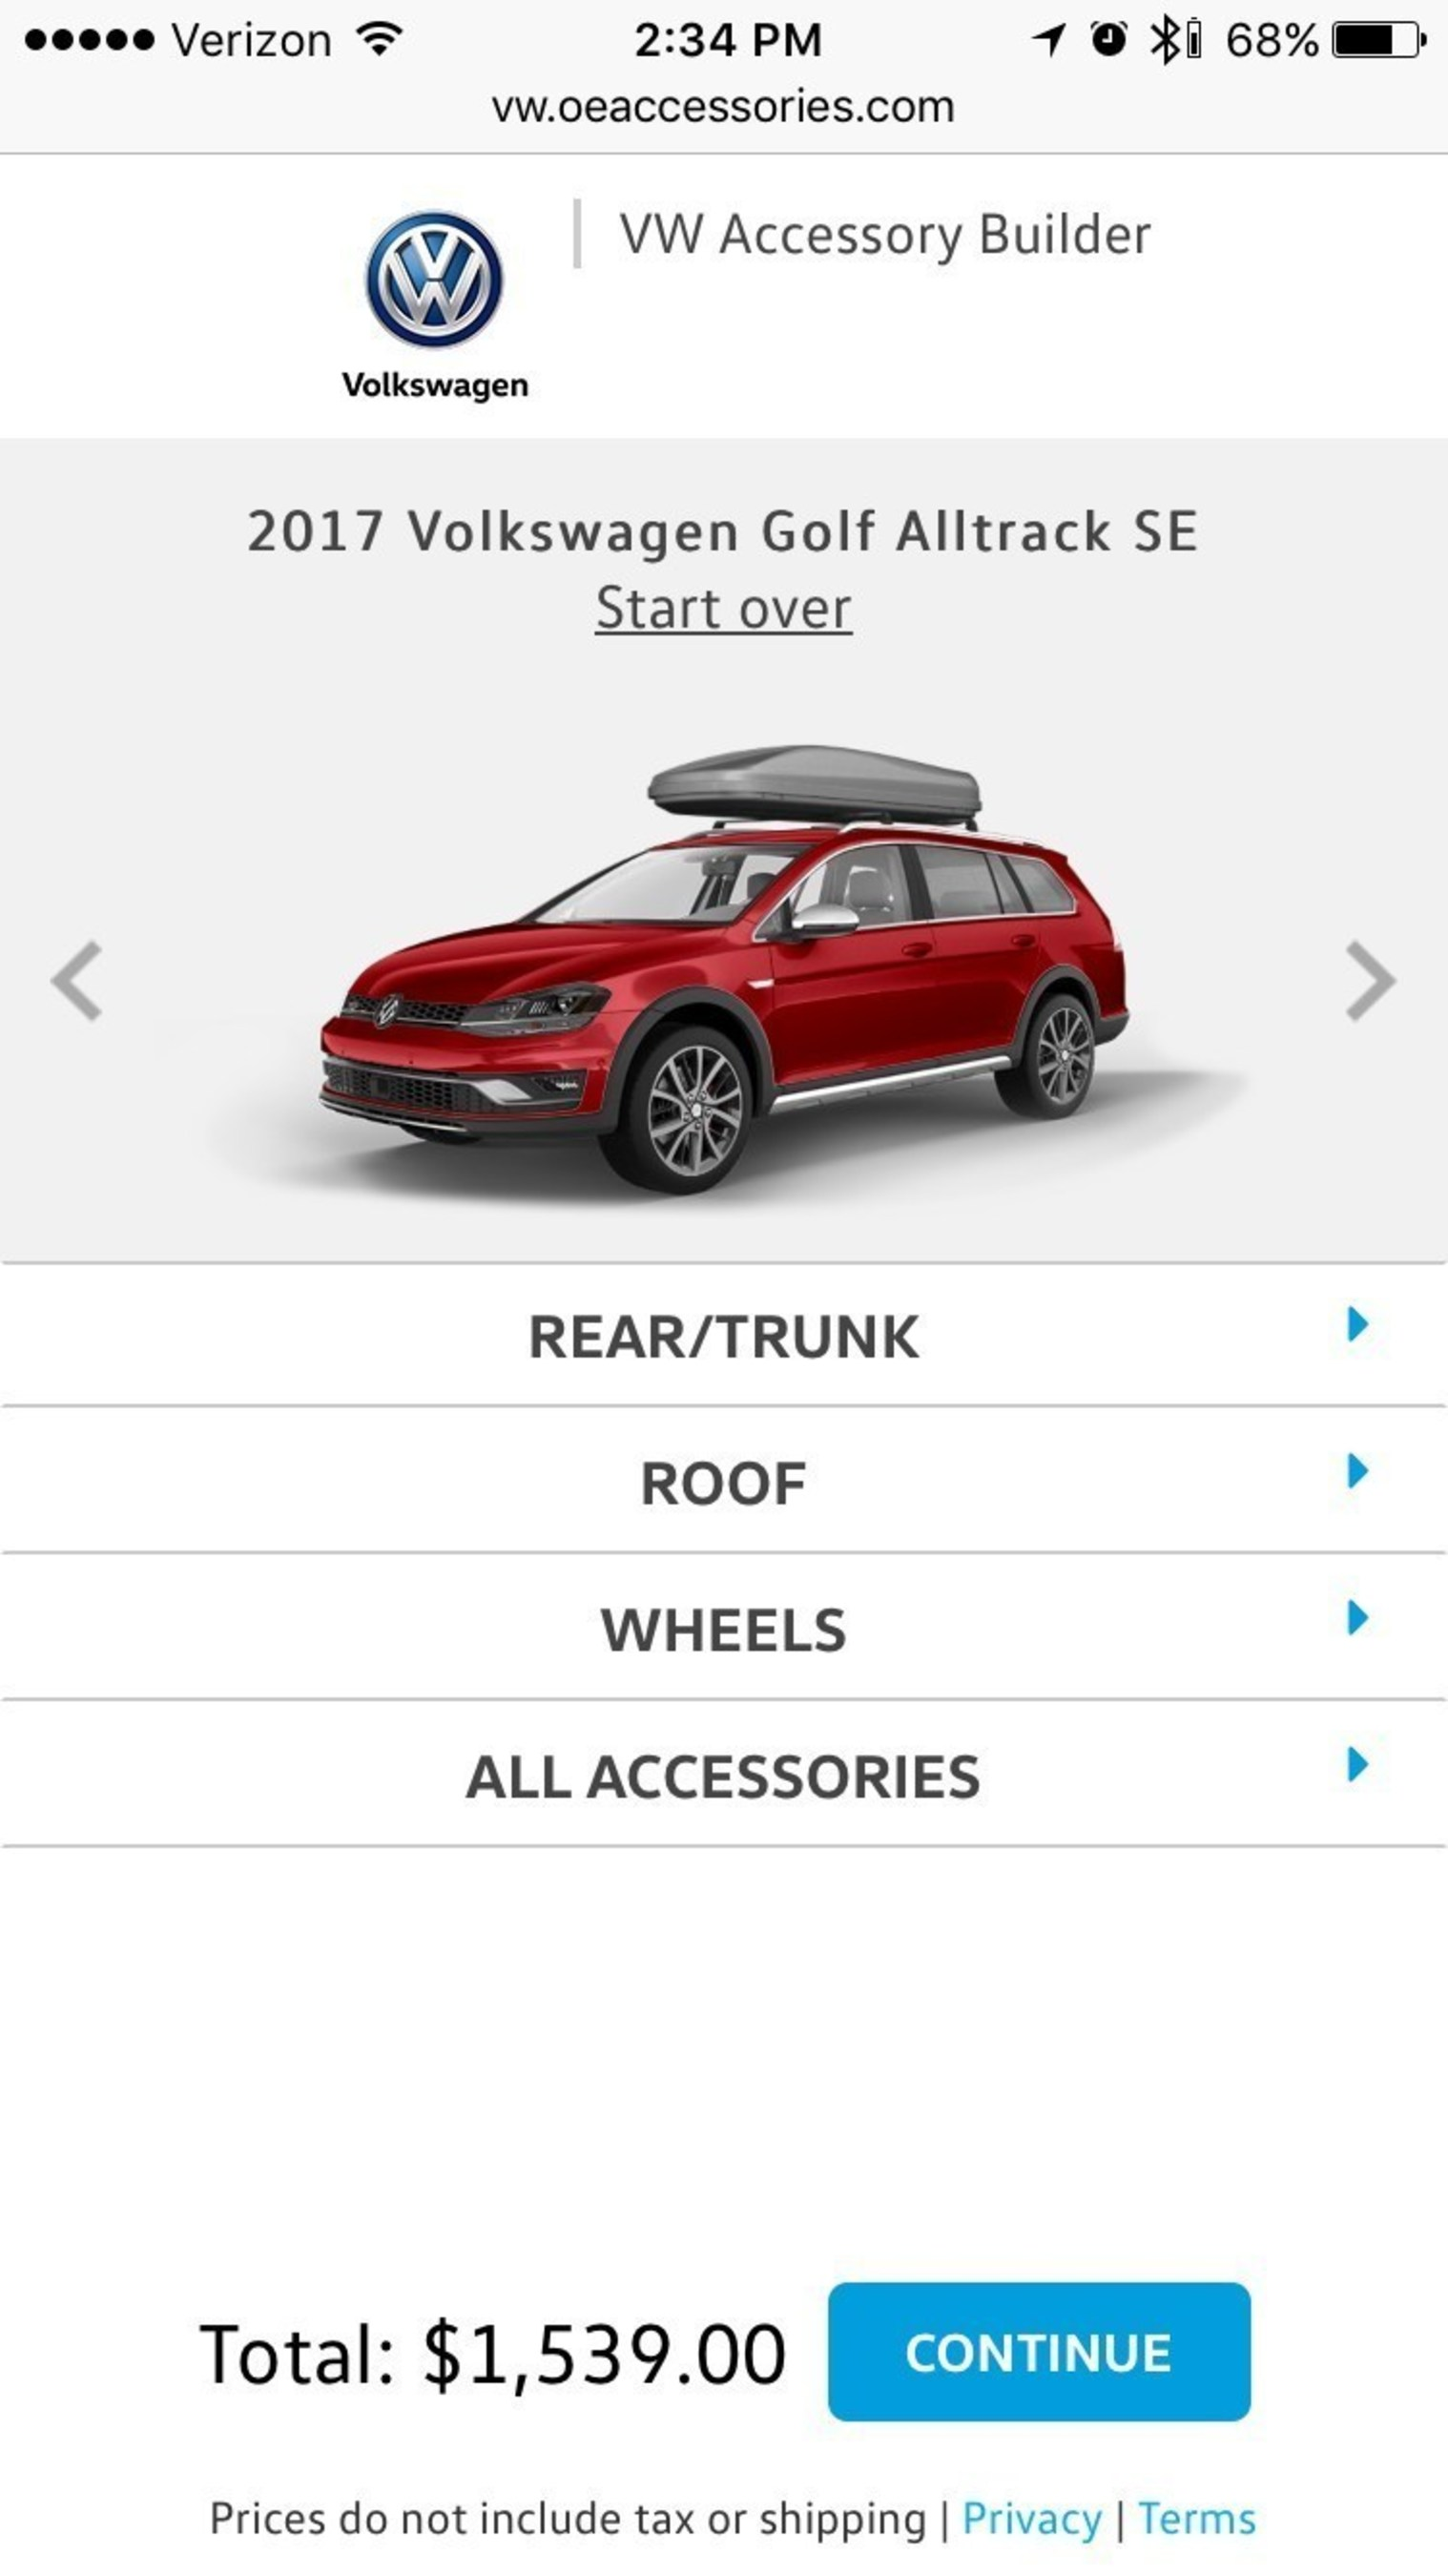 The VWaccessoriesbuilder.com system will be provided to all Volkswagen dealers and feature specific pricing and installation information. It is mobile-responsive.